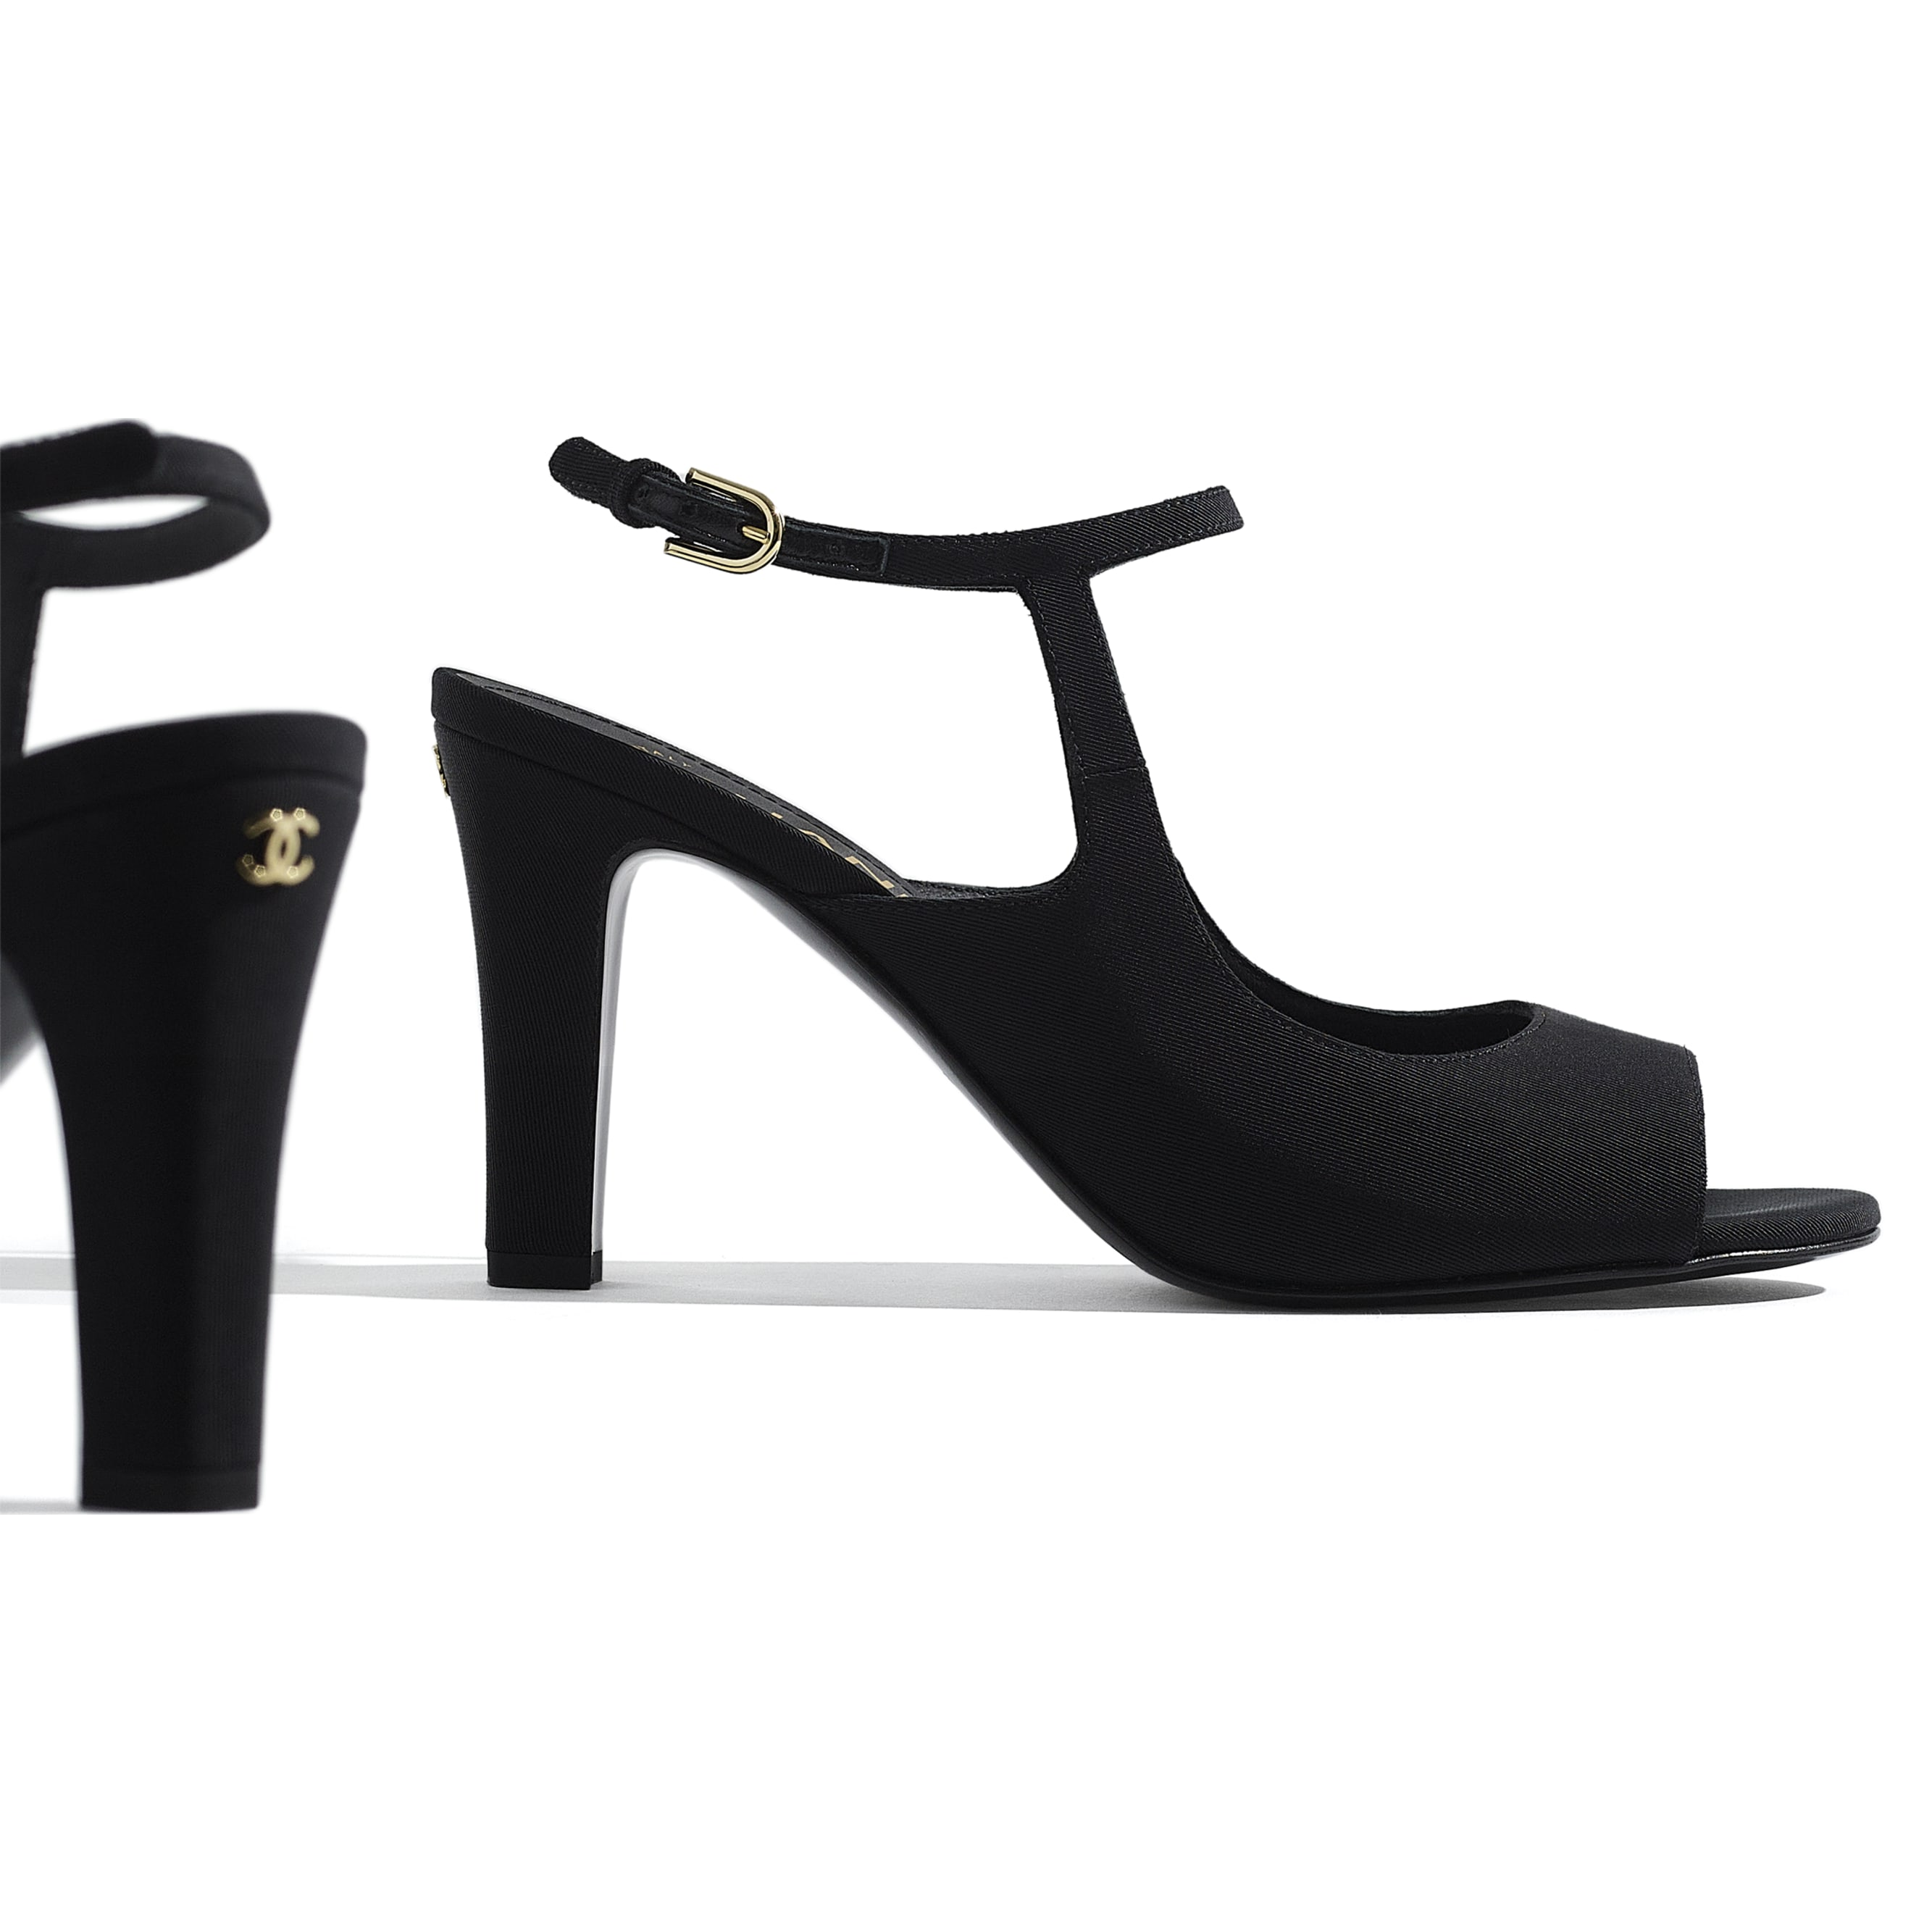 Sandals - Black - Grosgrain - CHANEL - Extra view - see standard sized version